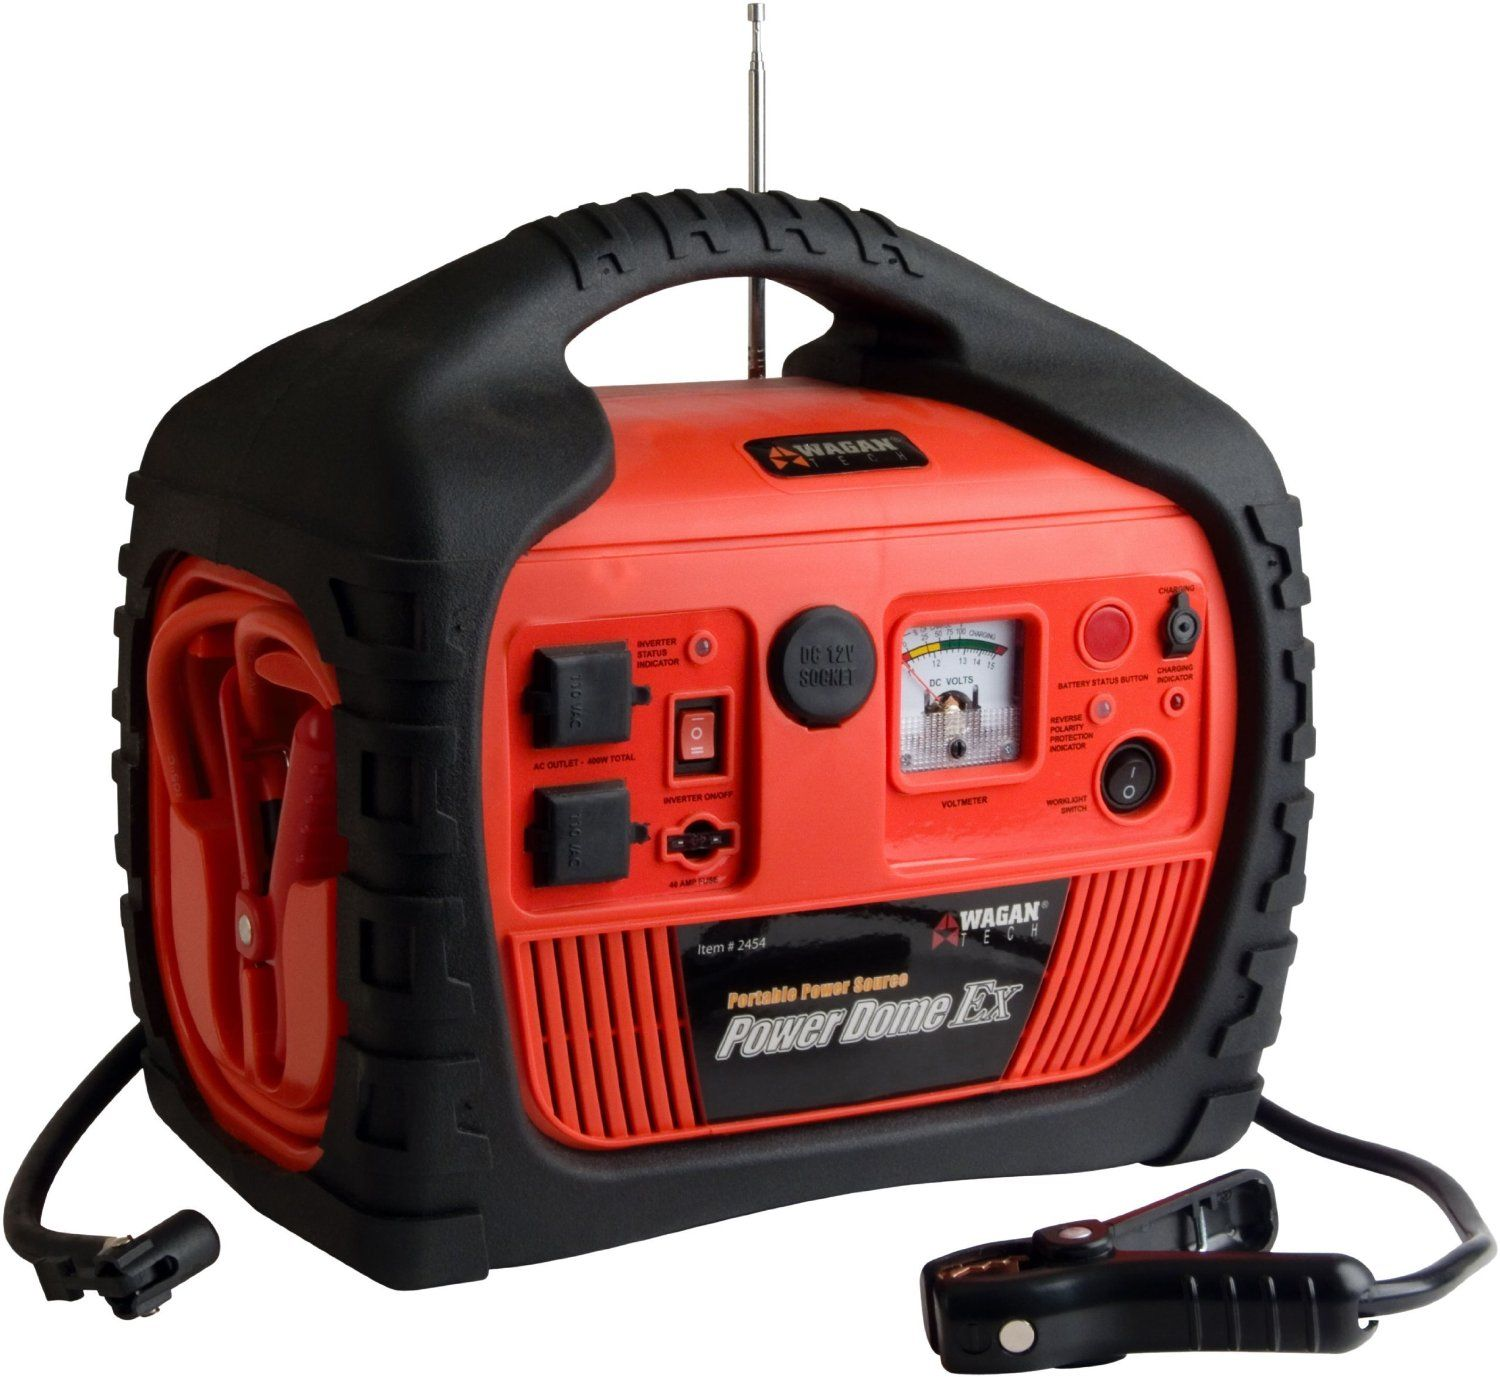 Power Dome EX Compact Generator with Built-In Air Compressor | me